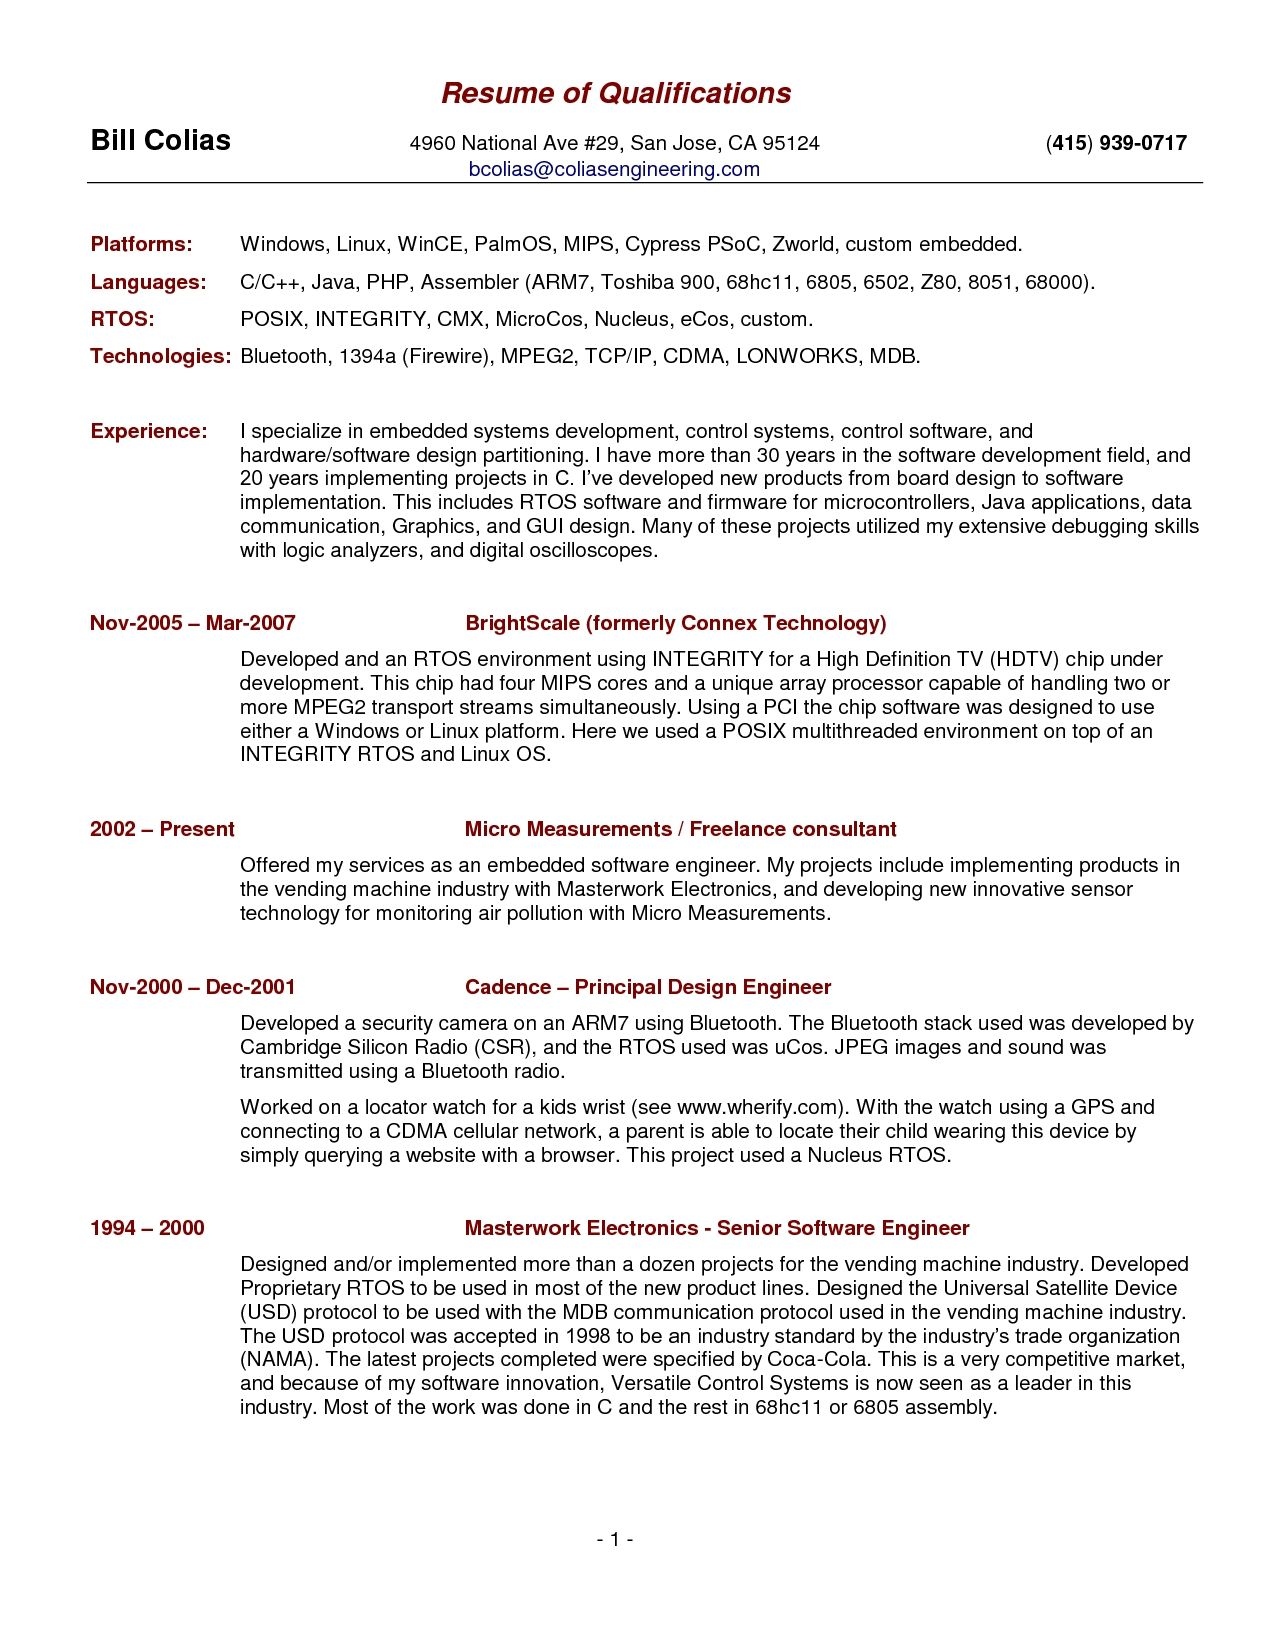 Qualifications For A Resume Examples FEaAA New Resume Skills And